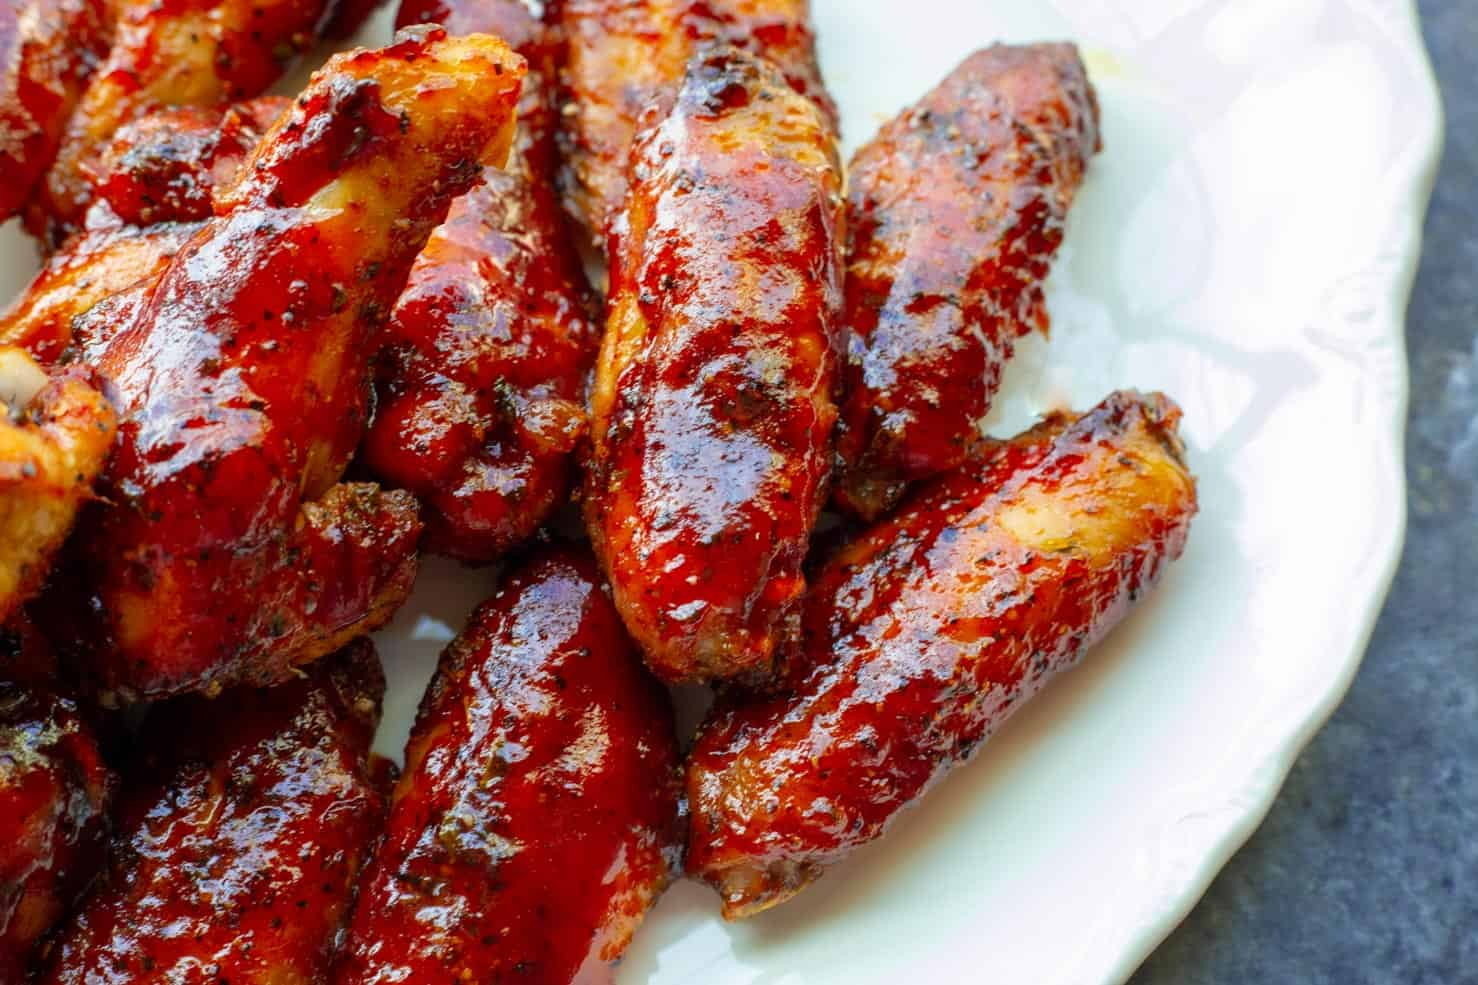 A plate containing smoked chicken wings with a shiny strawberry barbecue sauce.